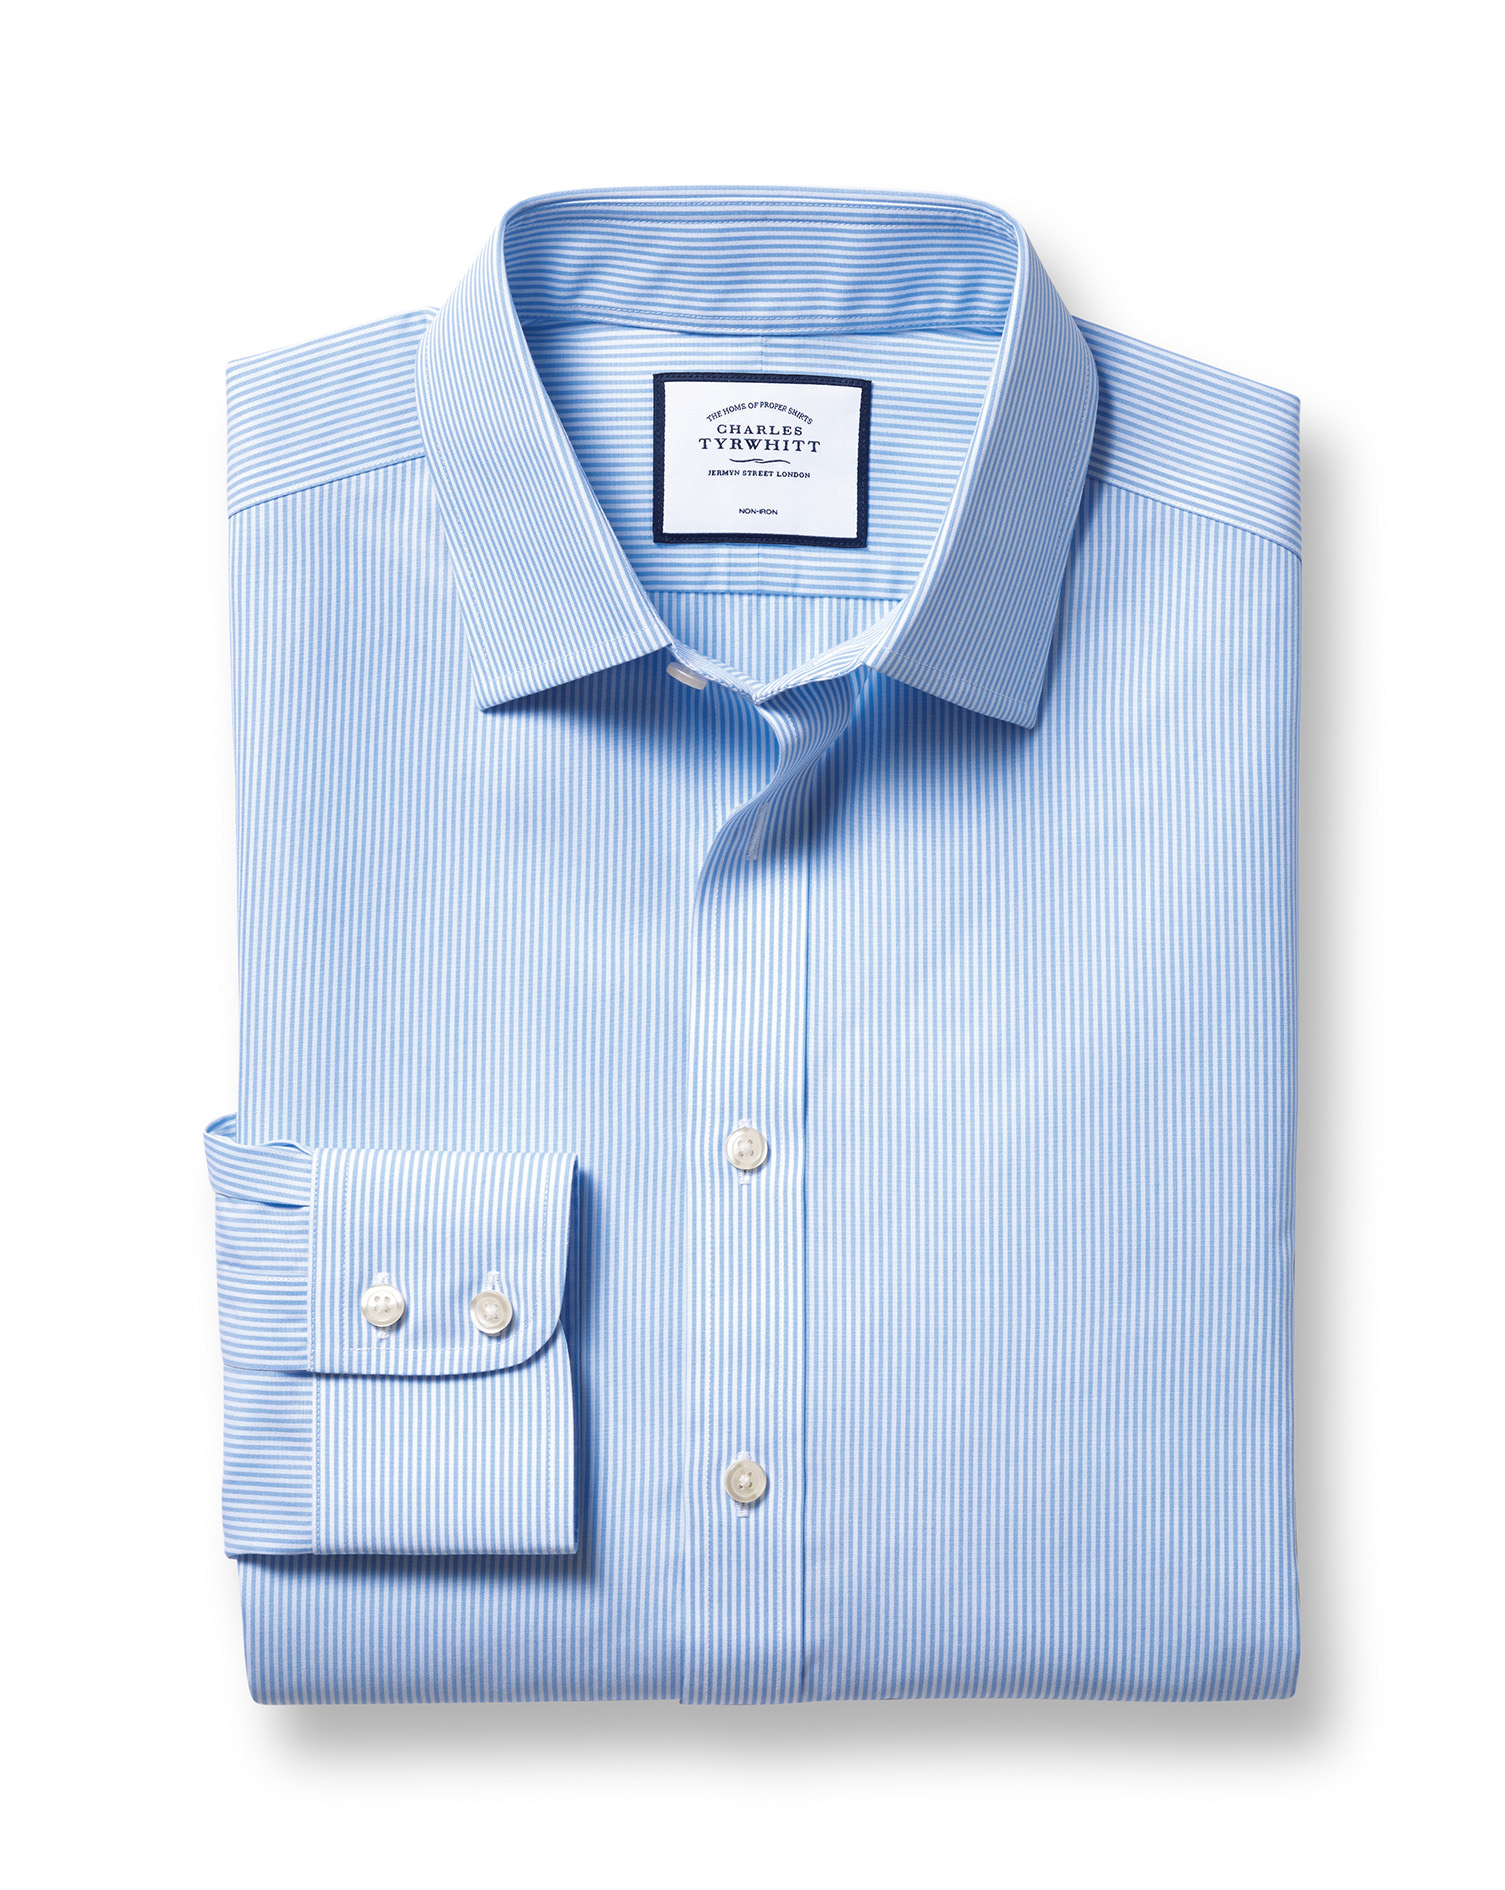 Classic Fit Non-Iron Bengal Stripe Sky Blue Cotton Formal Shirt Double Cuff Size 16.5/35 by Charles